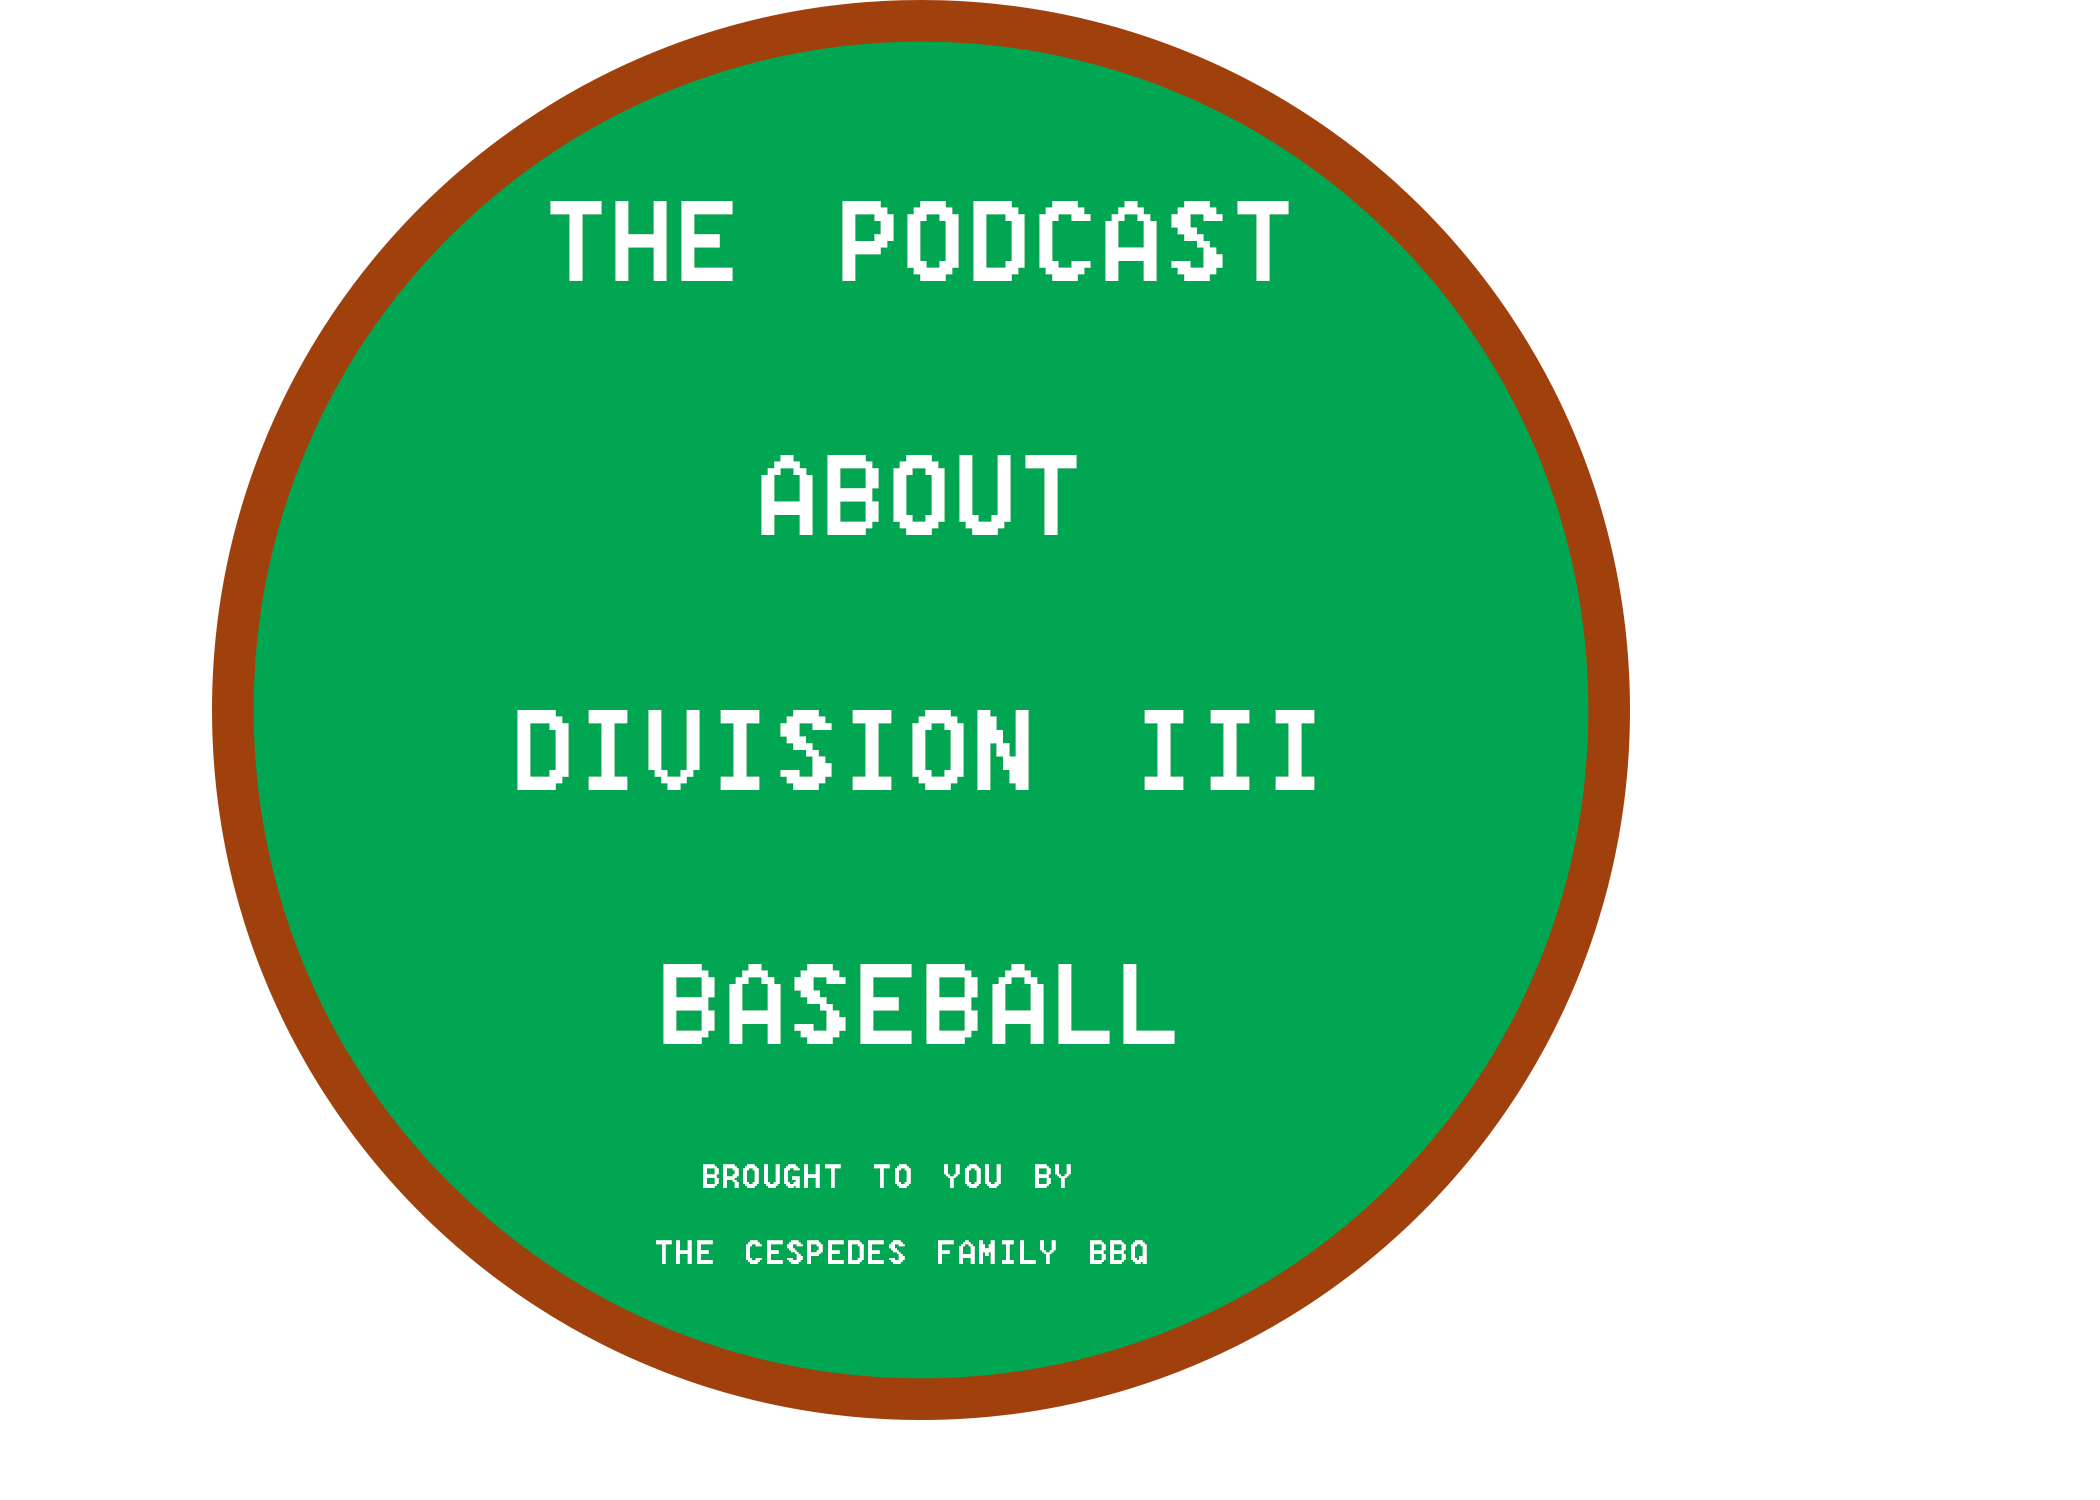 The Podcast About Division III Baseball show art